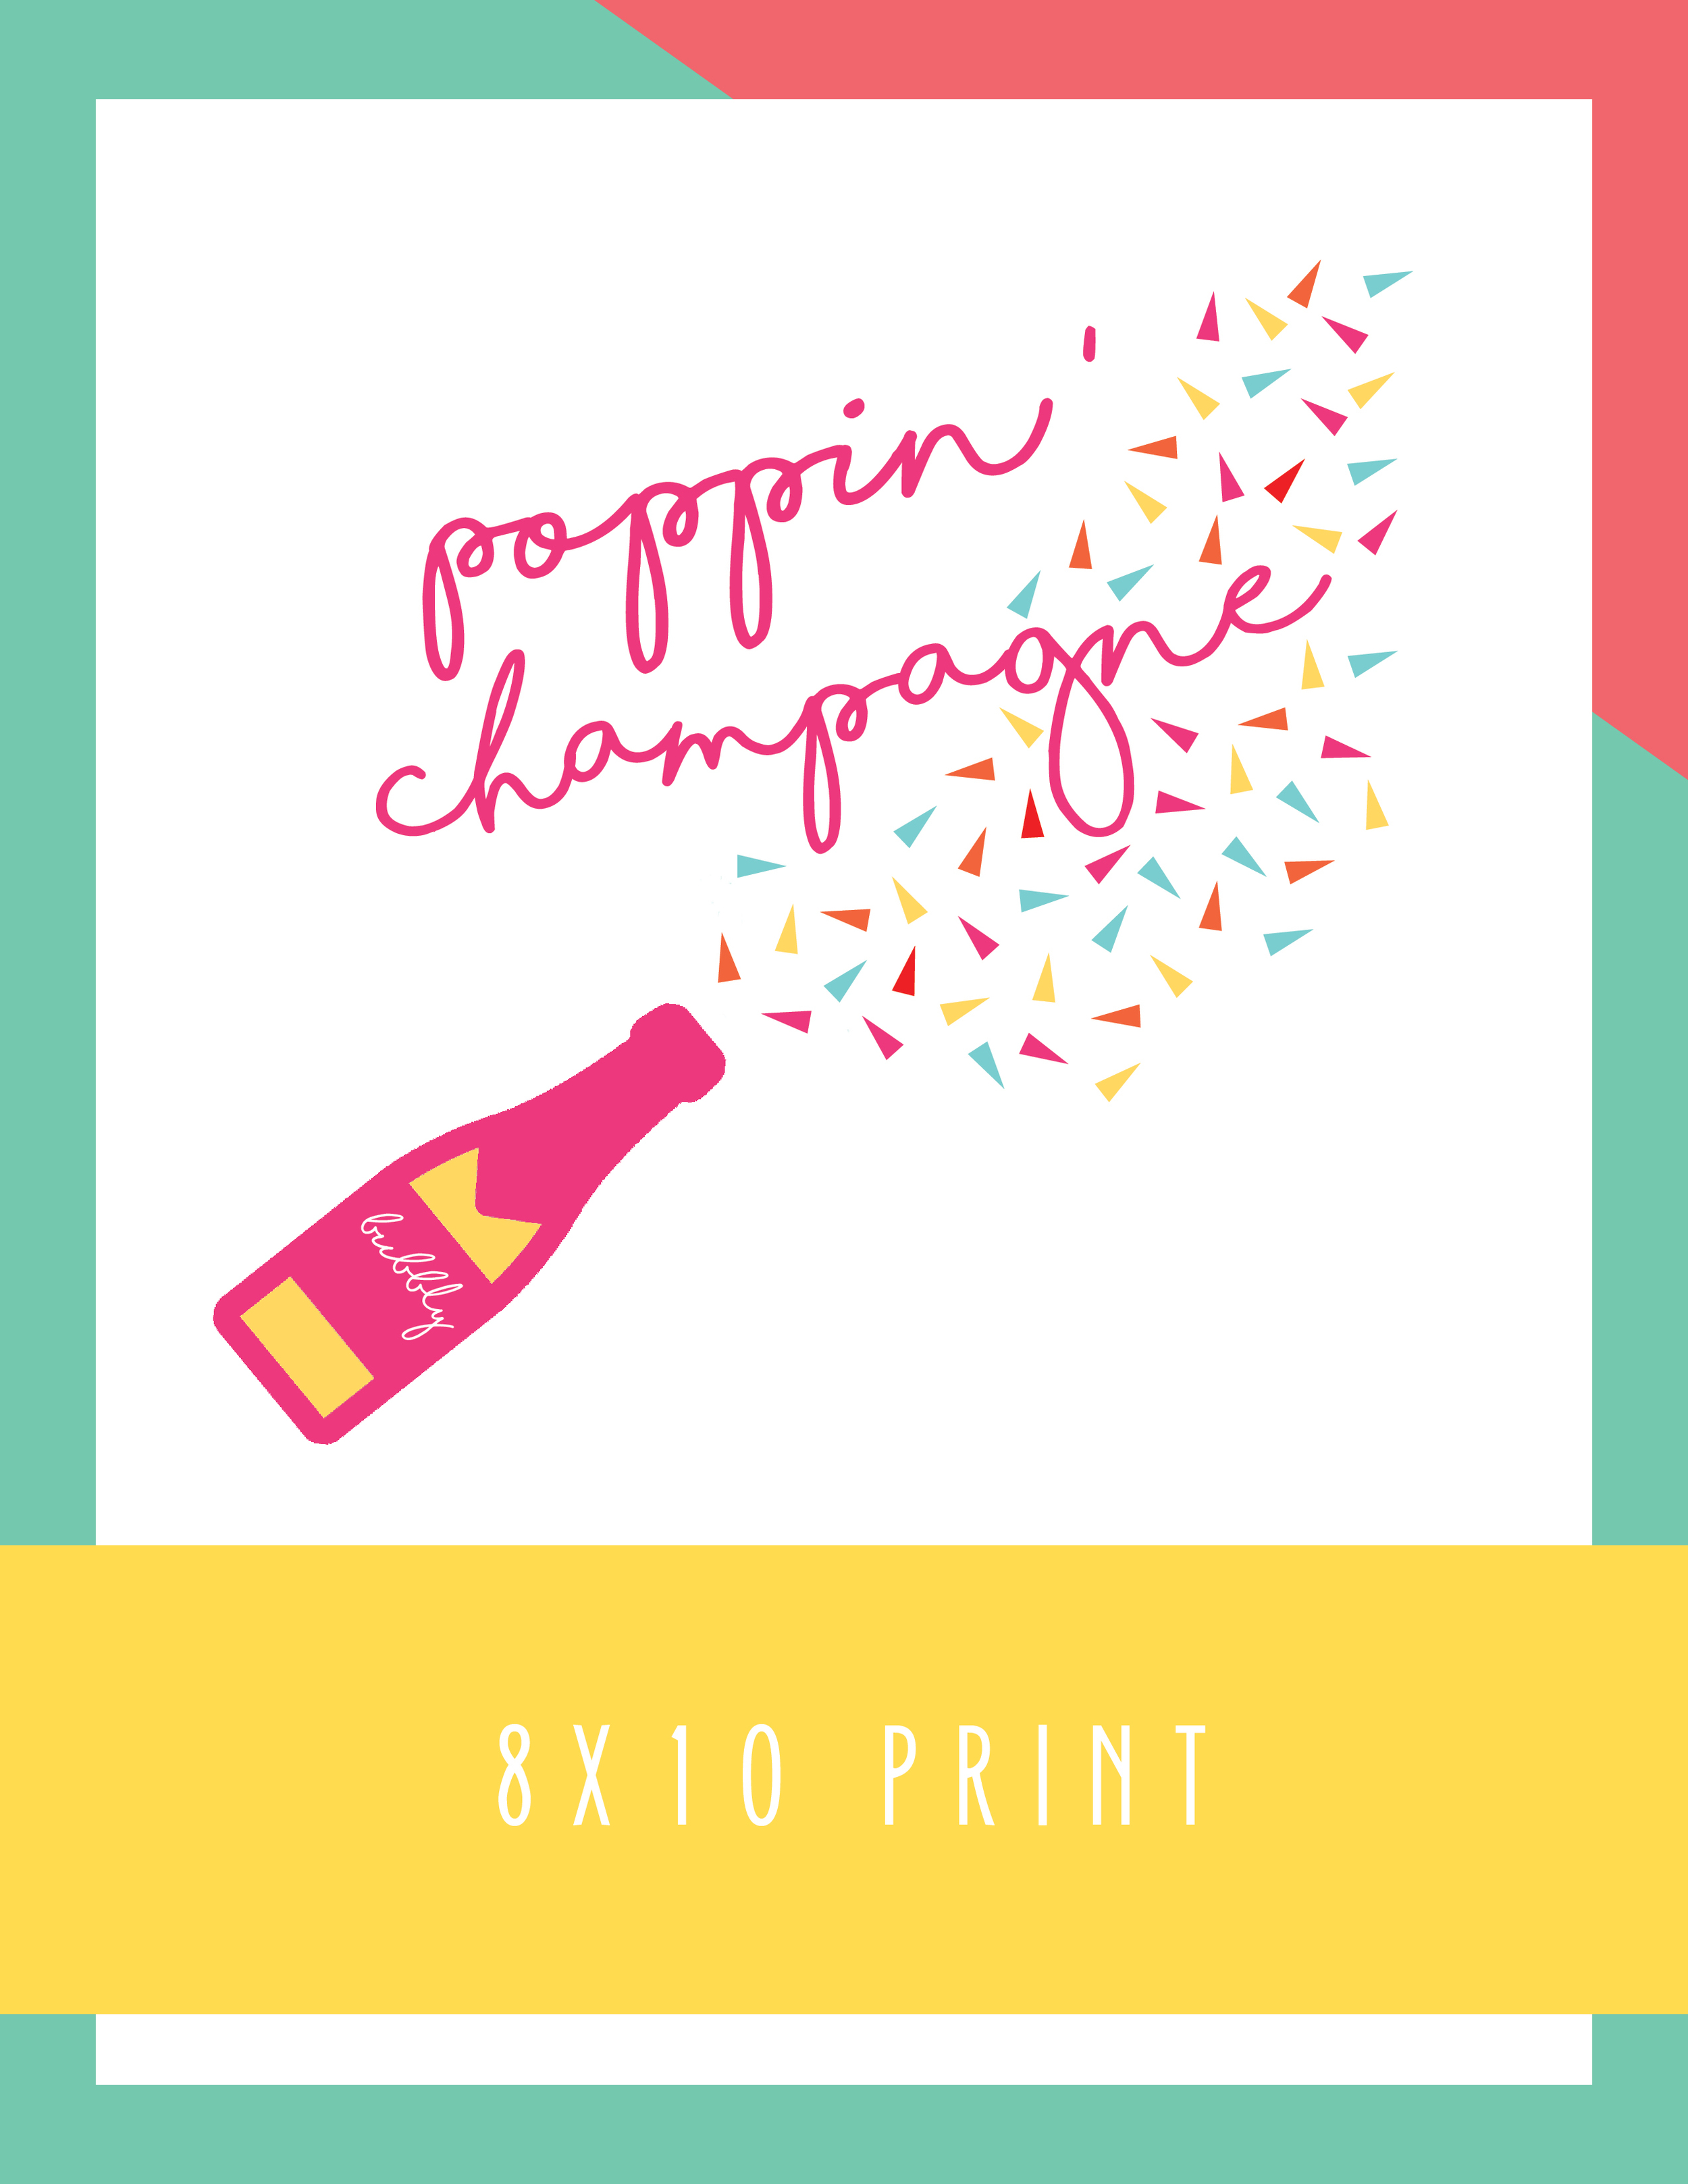 Bold & Pop Freebies Poppin' Champagne Print